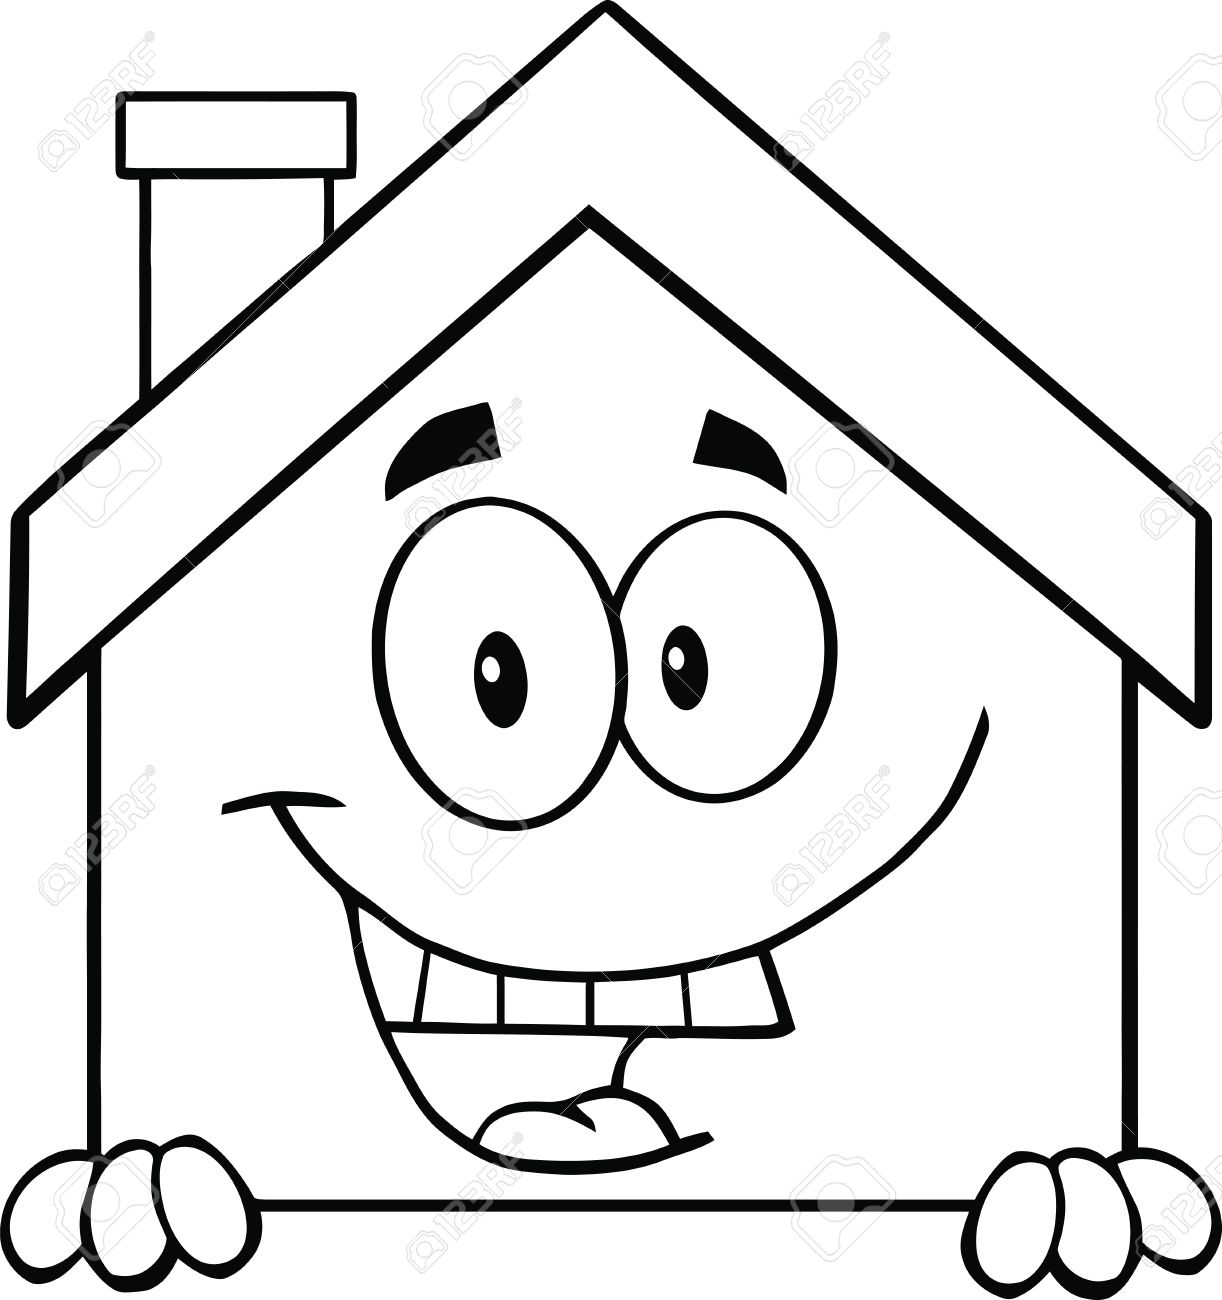 House Cartoon Images Black And White Black And White House Cartoon